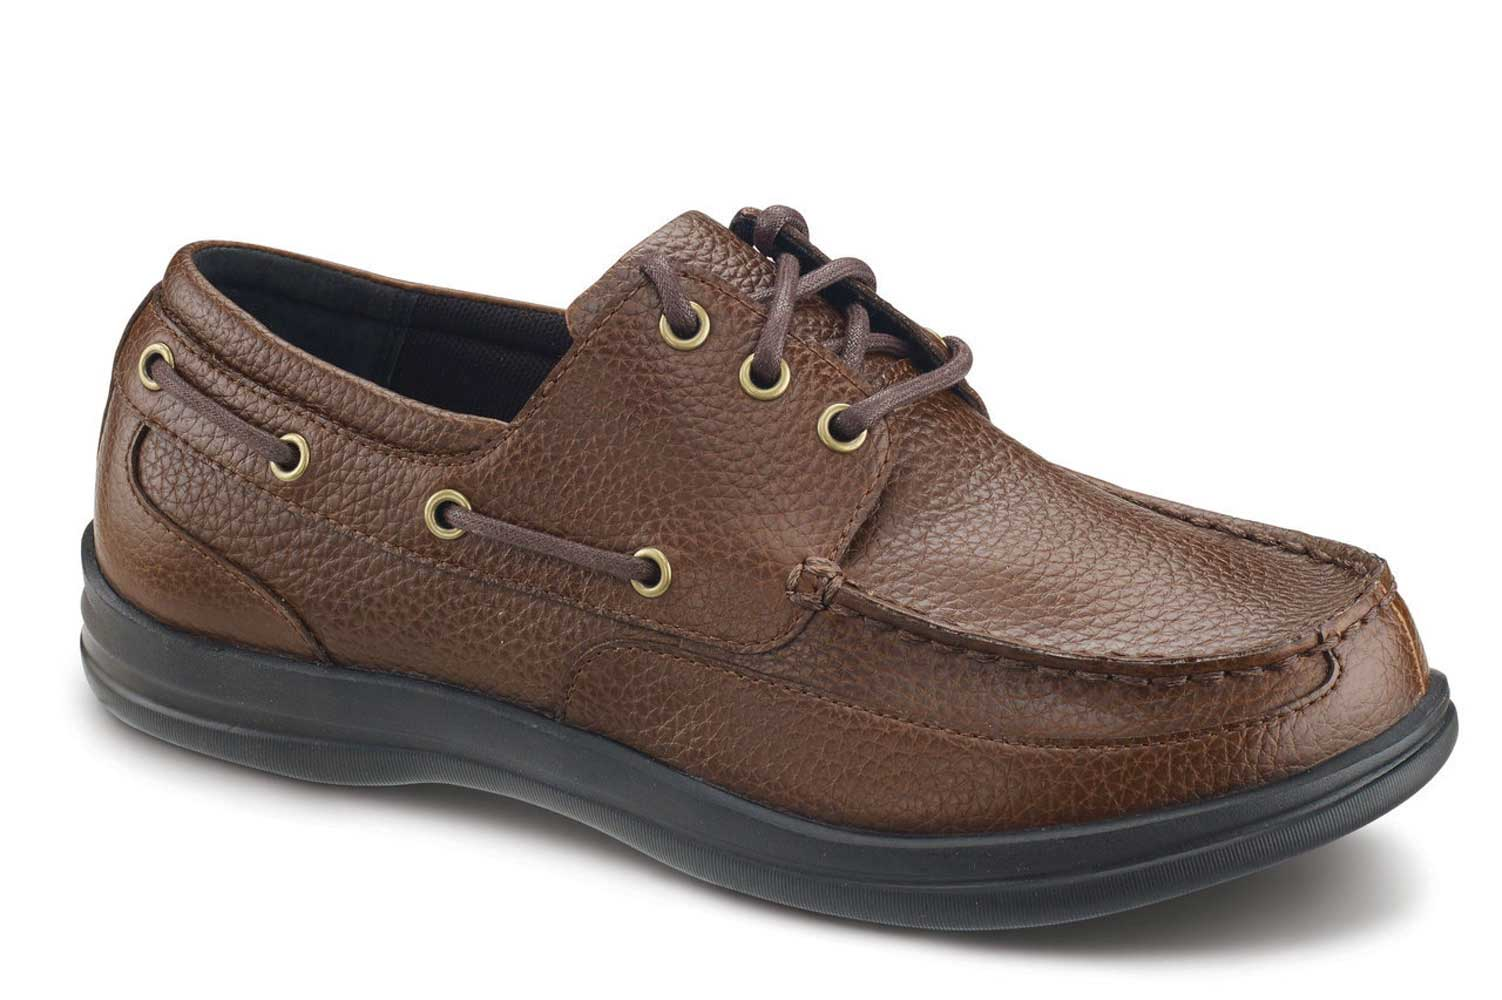 Apex Shoes Classic Lace Boat Shoe A1100M - Men's Comfort Therapeutic Boat Shoe - Medium (C) - Extra Wide (4E) - Extra Depth for Orthotics